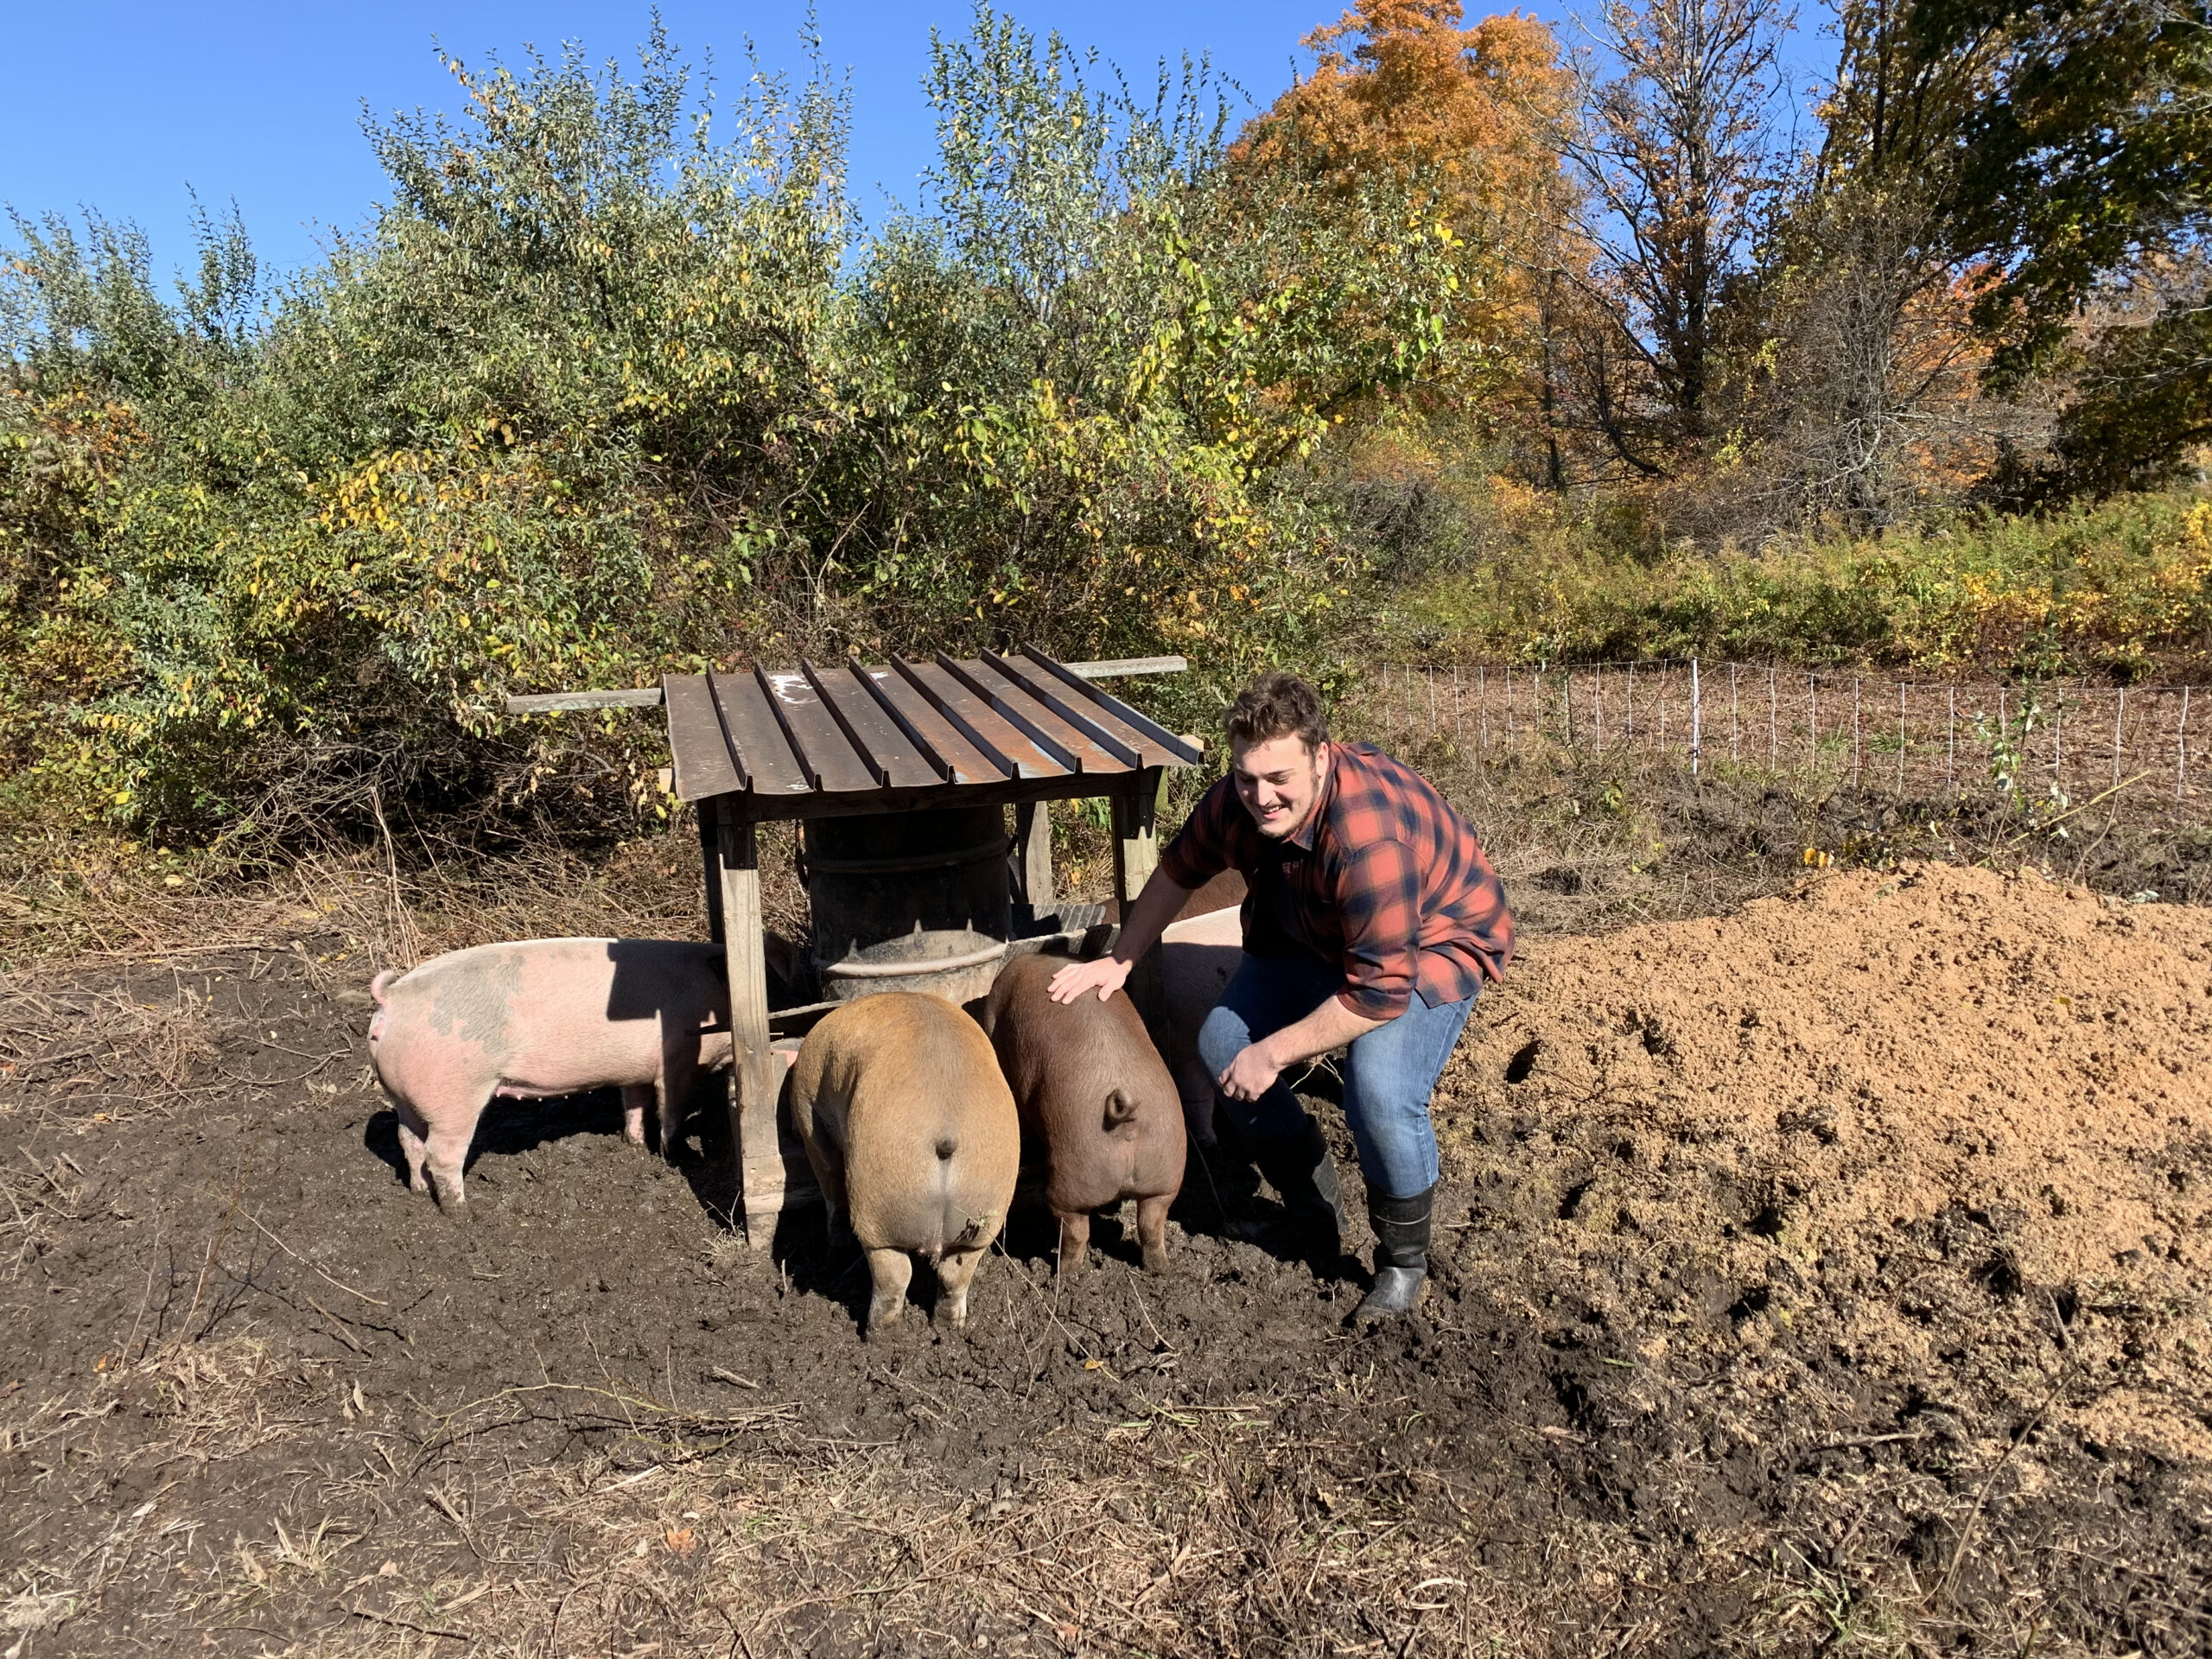 dyson with pigs